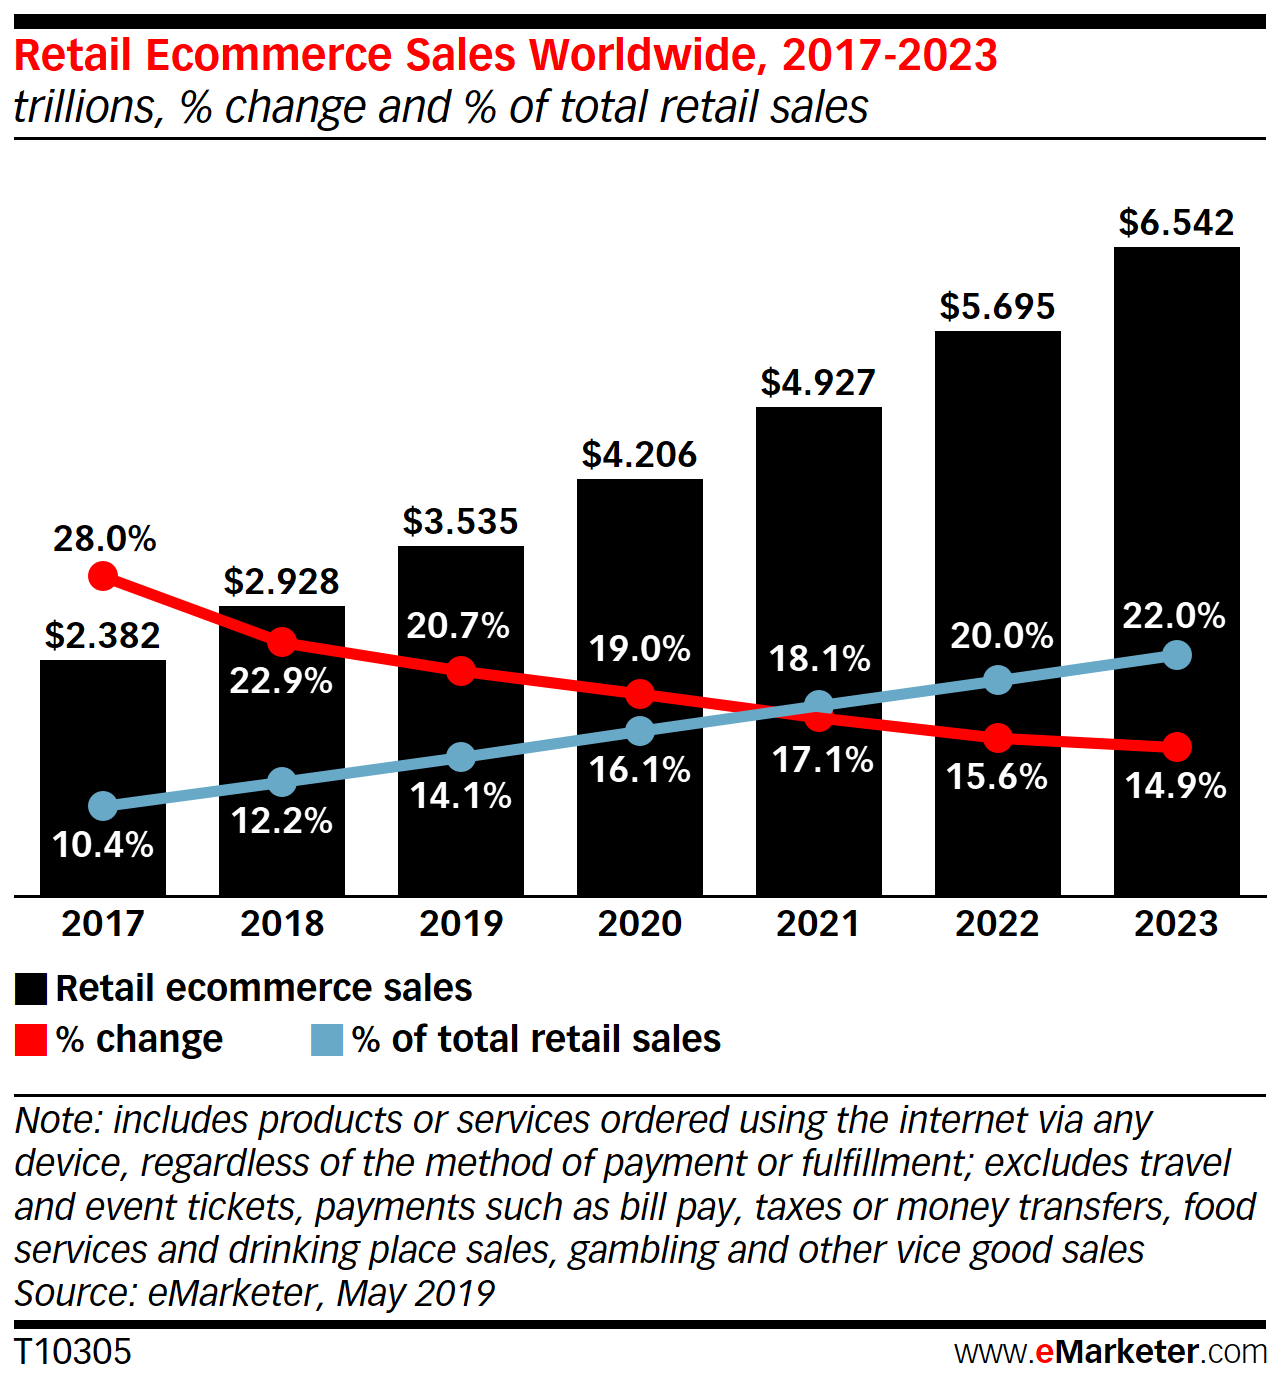 Global Ecommerce 2019 Emarketer Trends Forecasts